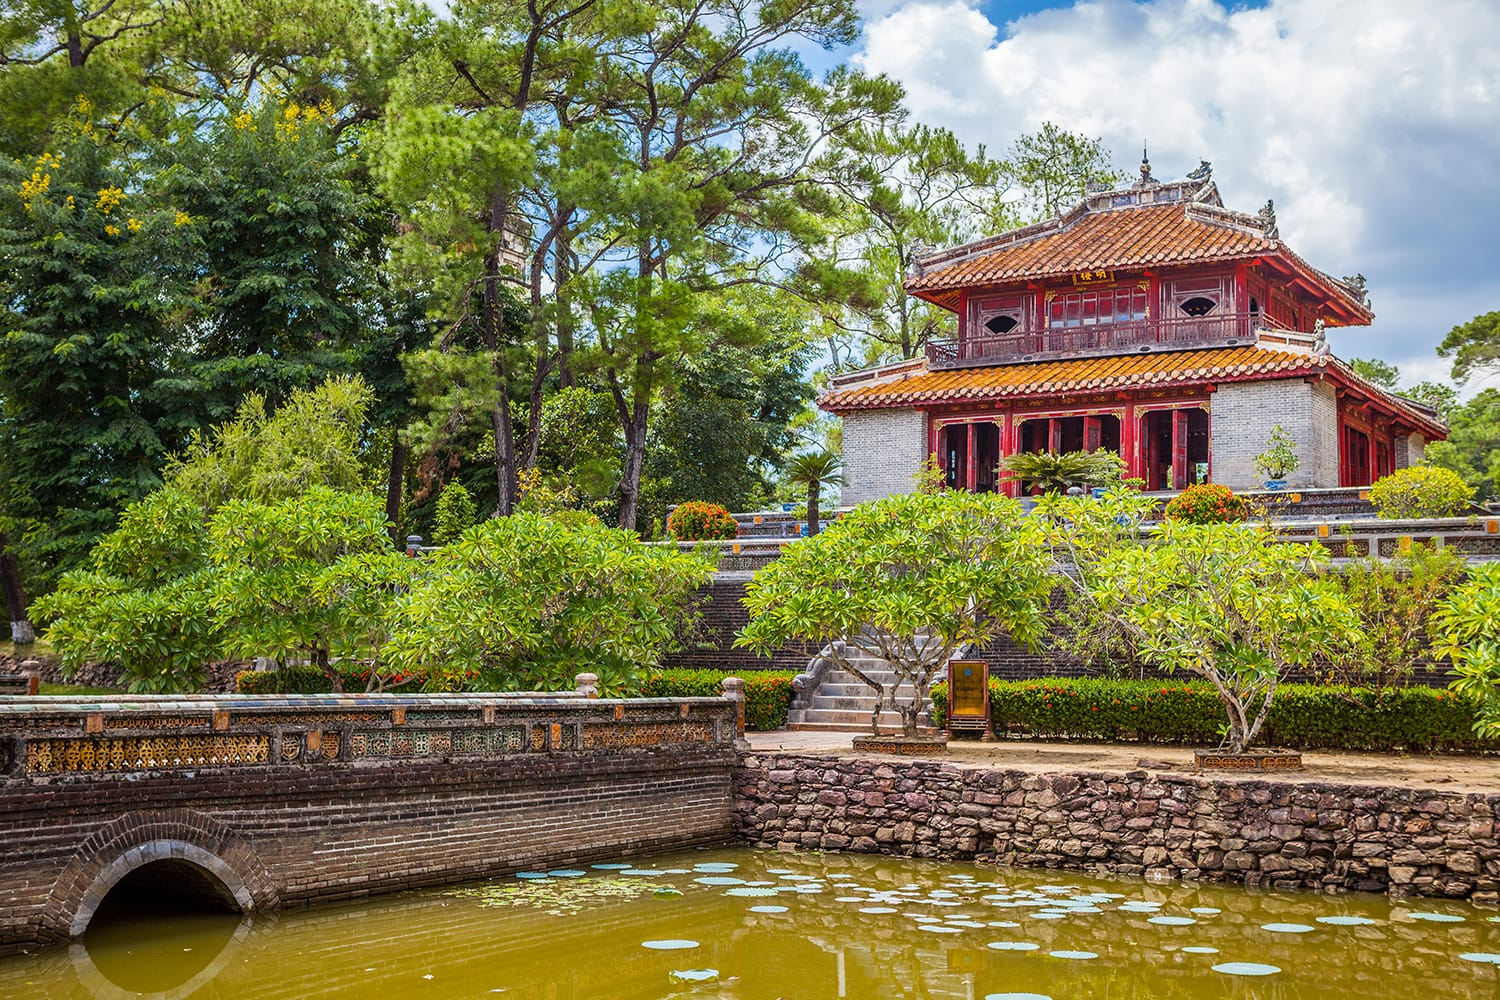 Minh Lau pavilion and Trung Dao bridge at Minh Mang Emperor Tomb in Hue, Vietnam